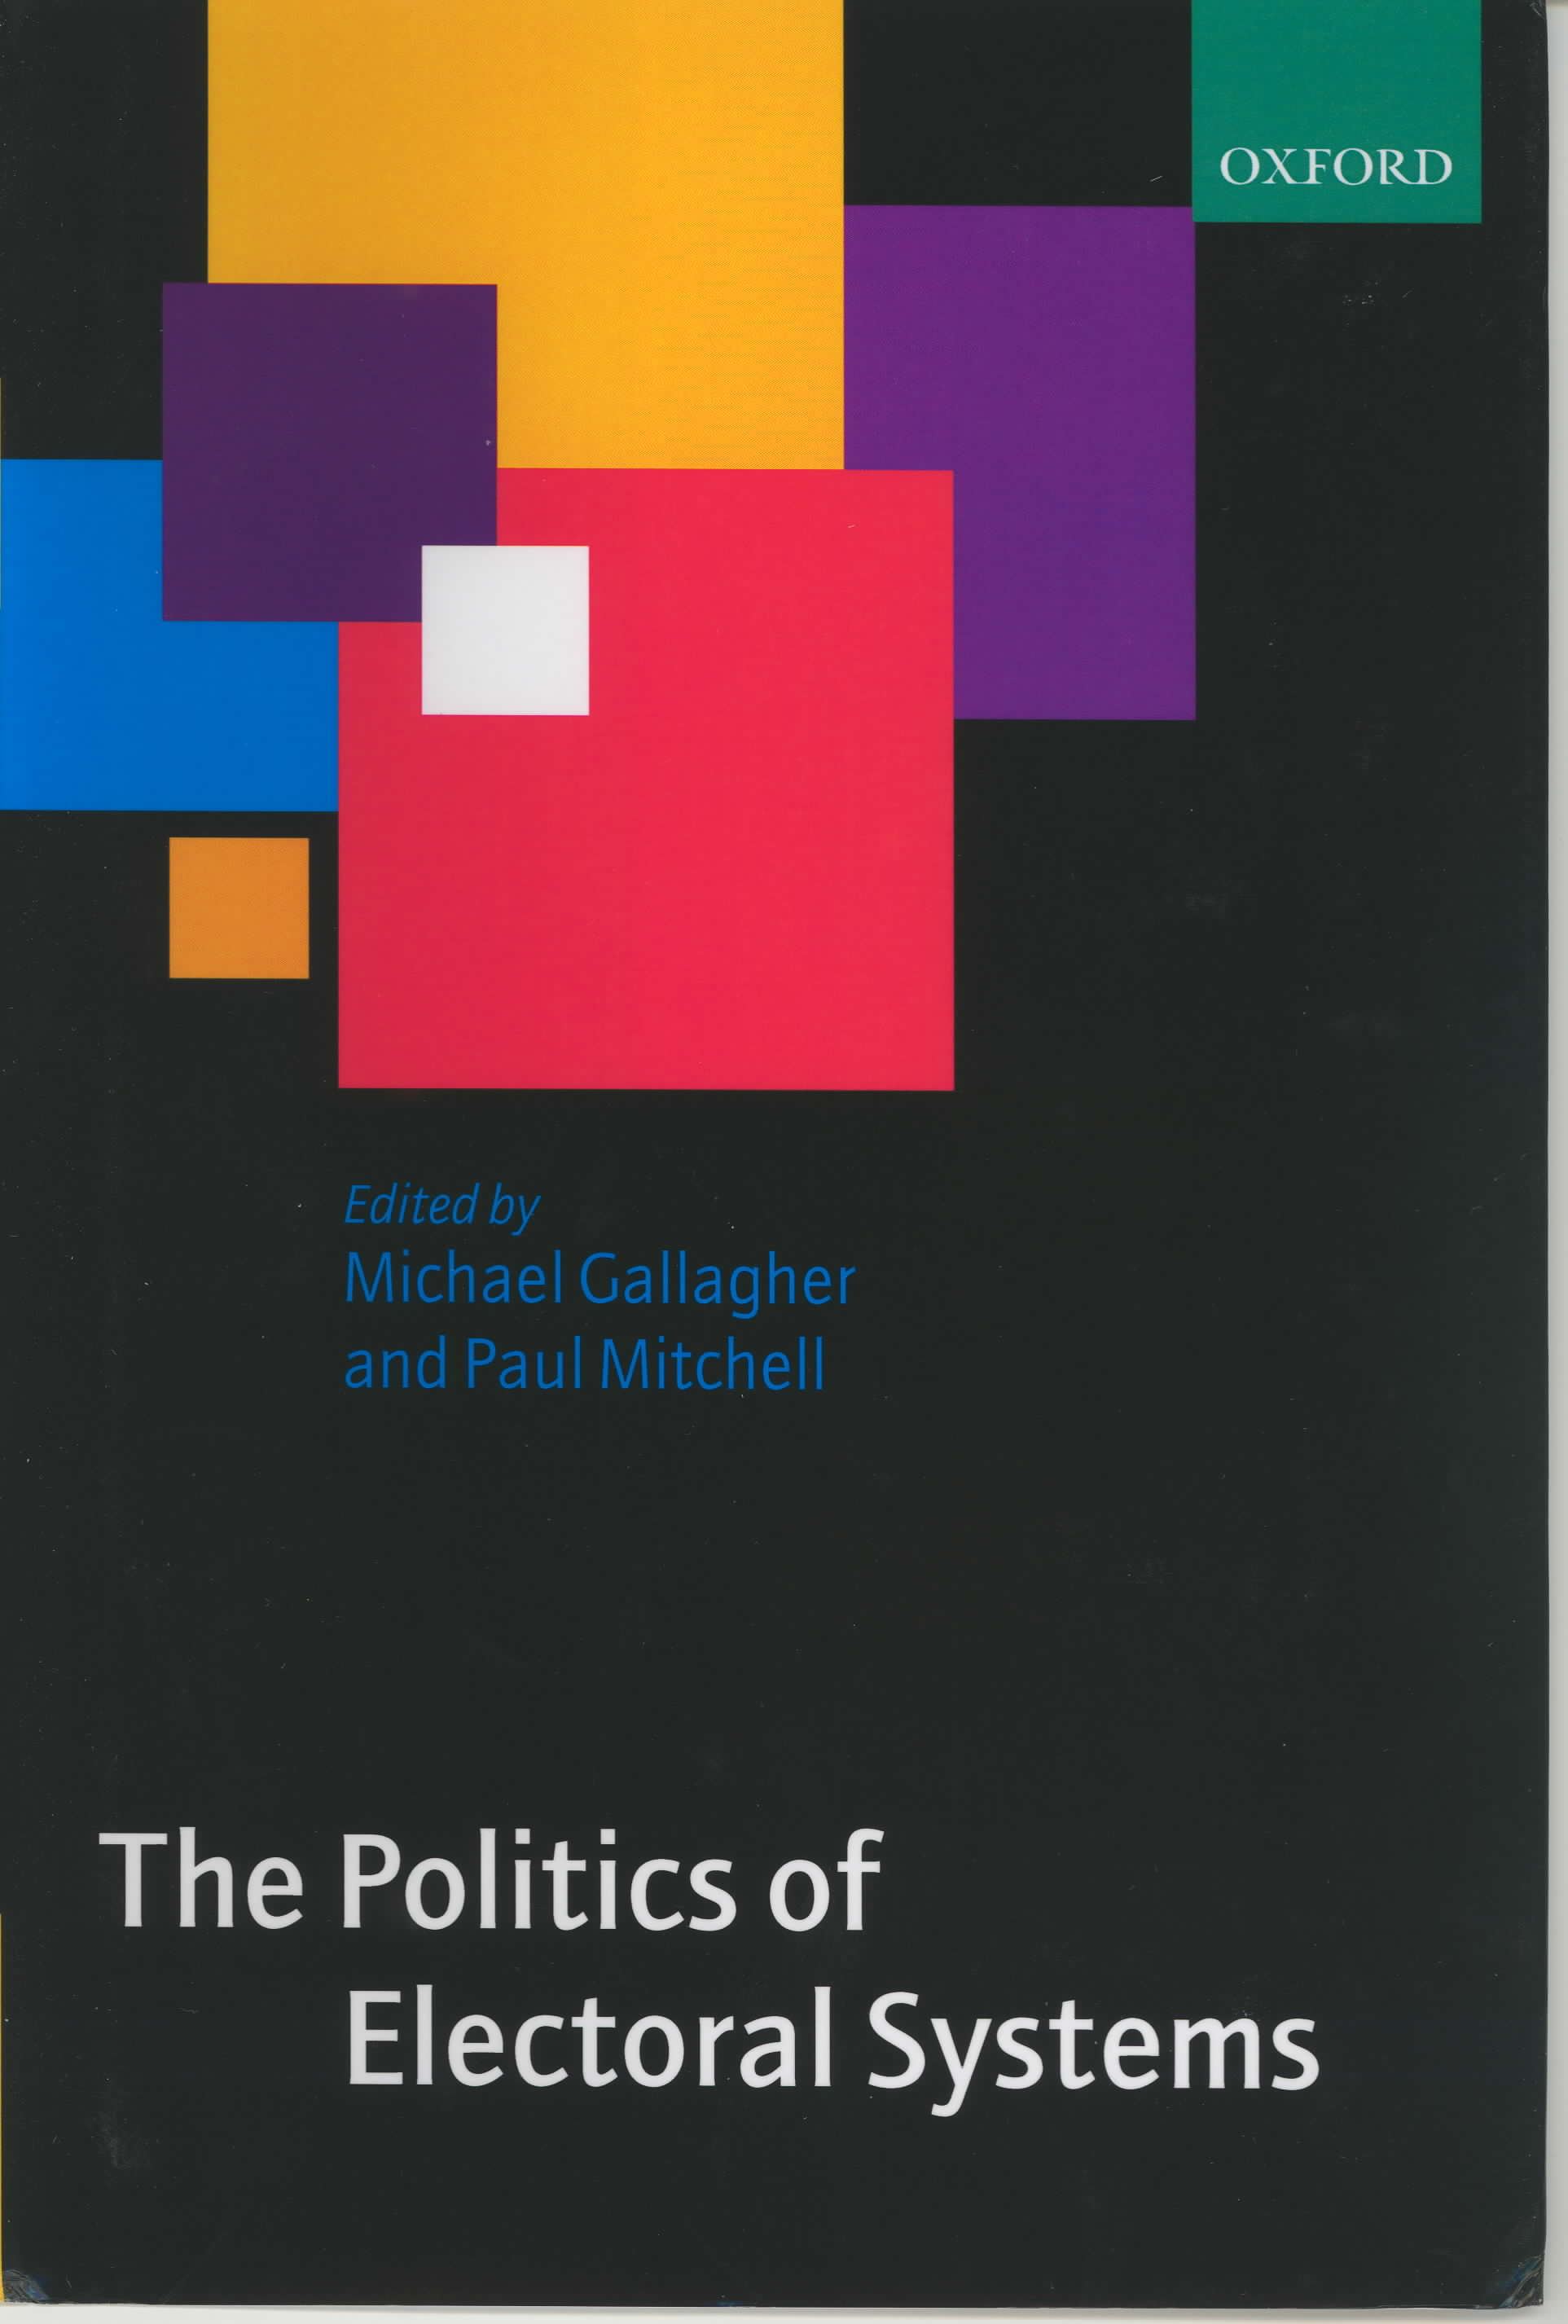 Cover of the book 'The Politics of Electoral Systems'